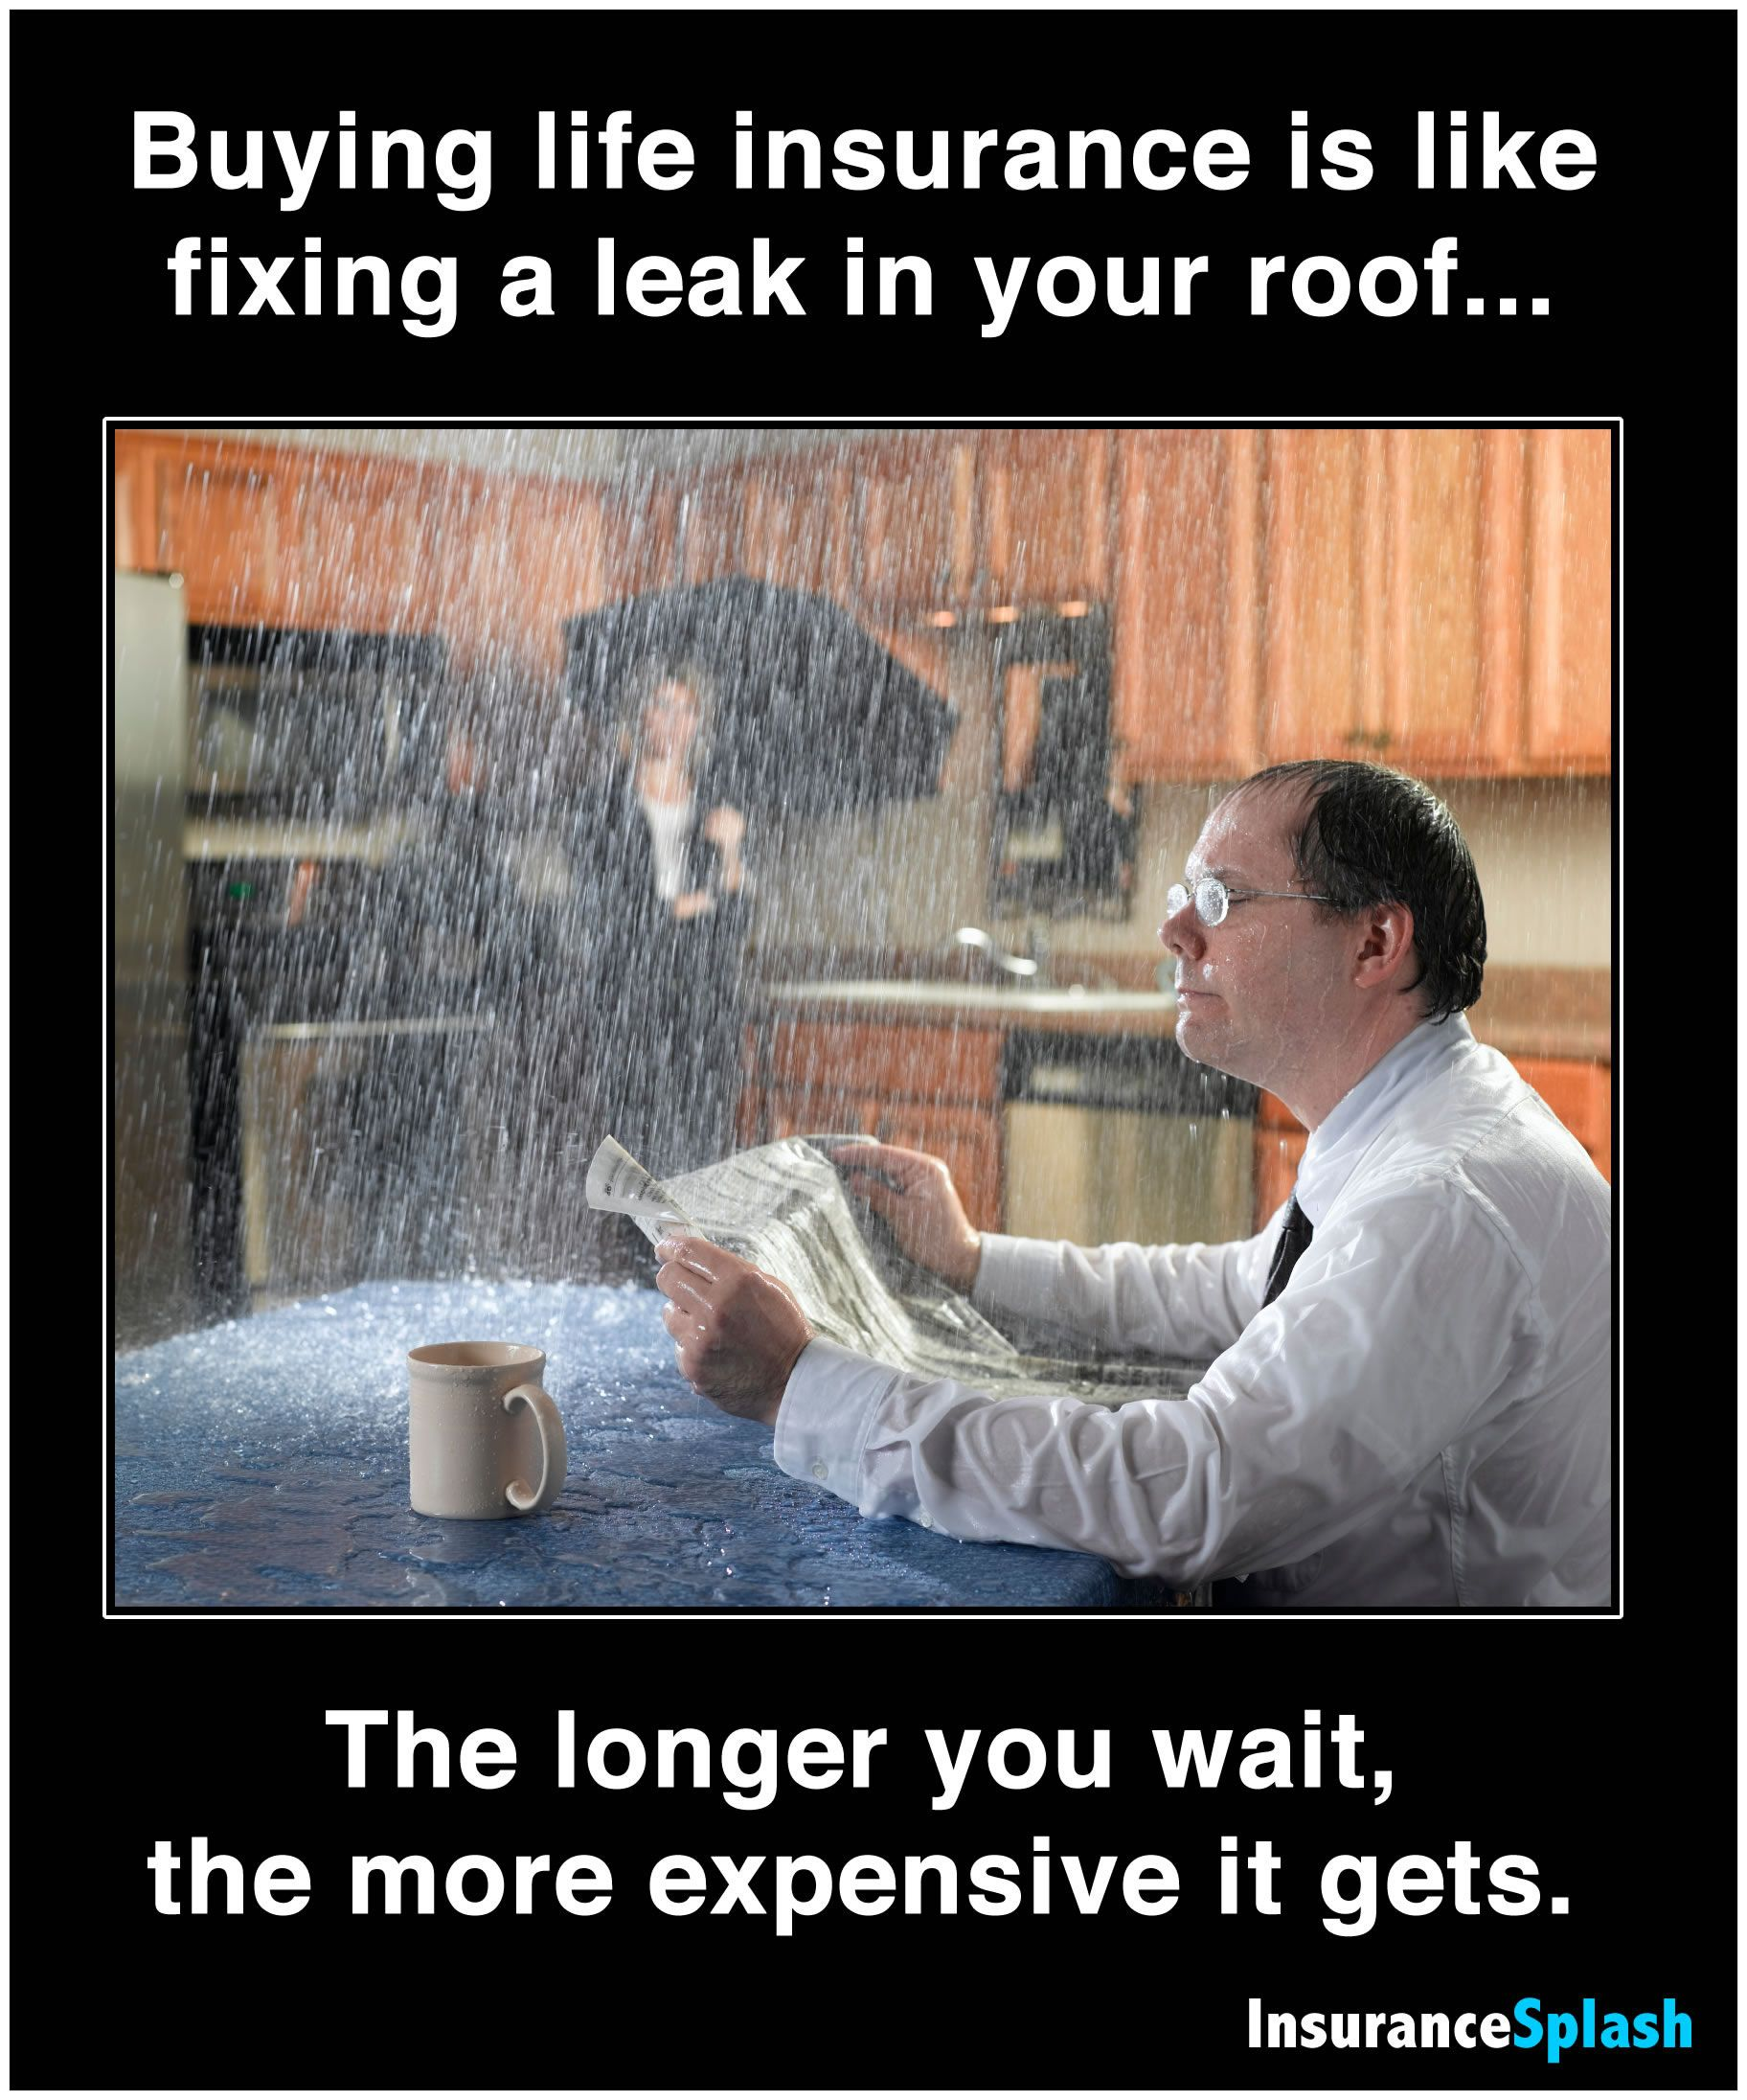 Buying life insurance is like fixing a leak in your roof